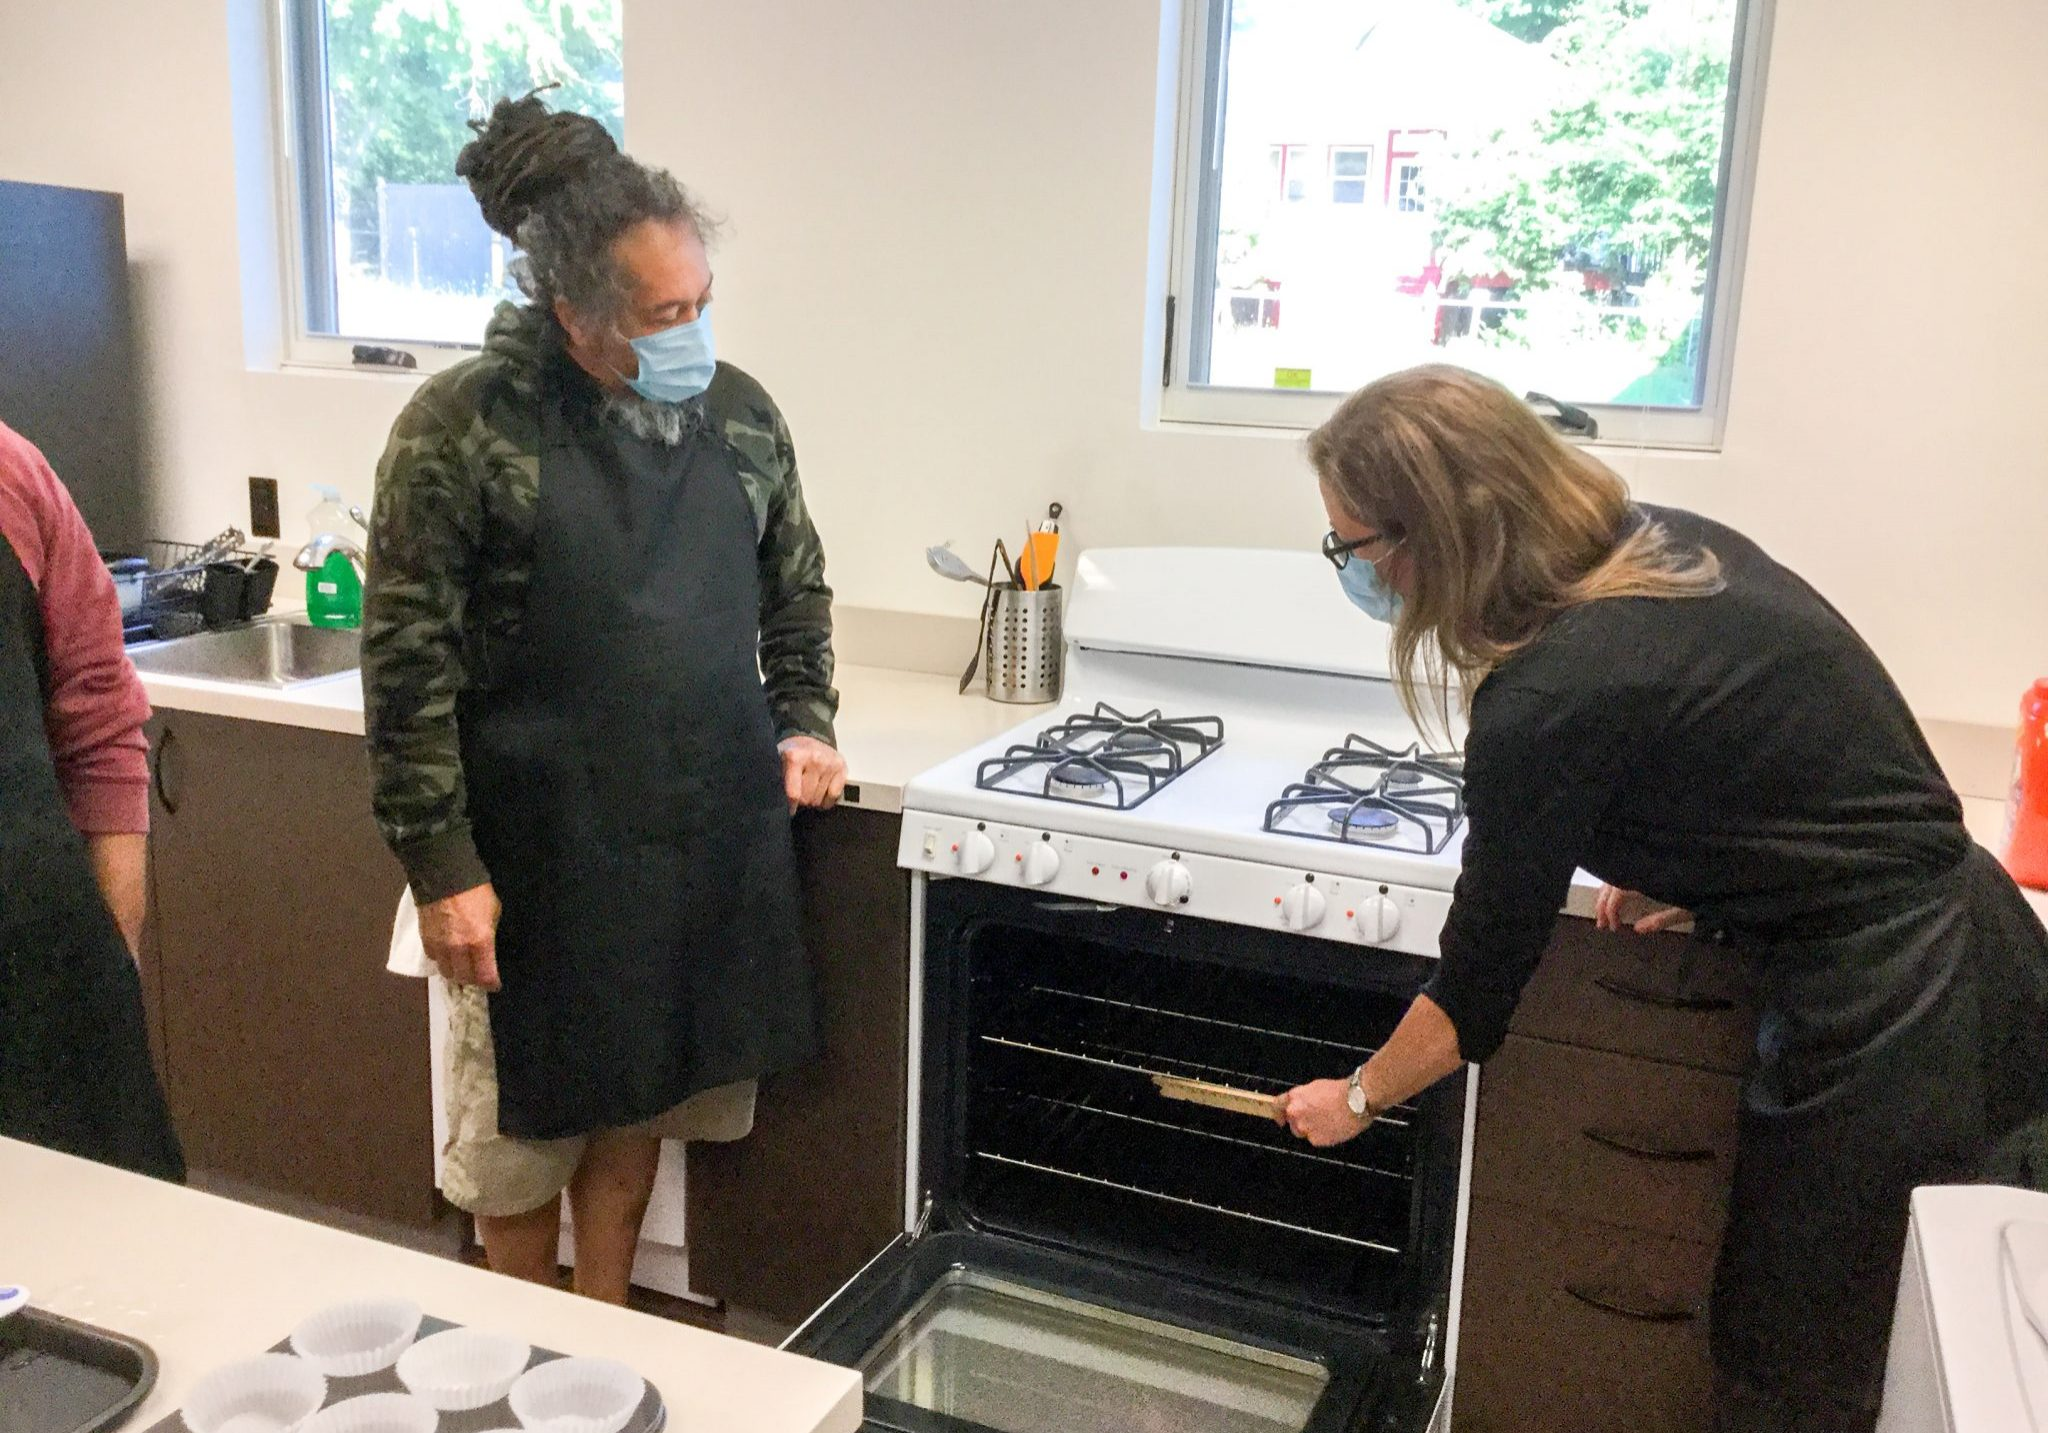 An instructor at VISIONS Vocational Rehabilitation Center works with two participants on safely using the oven.